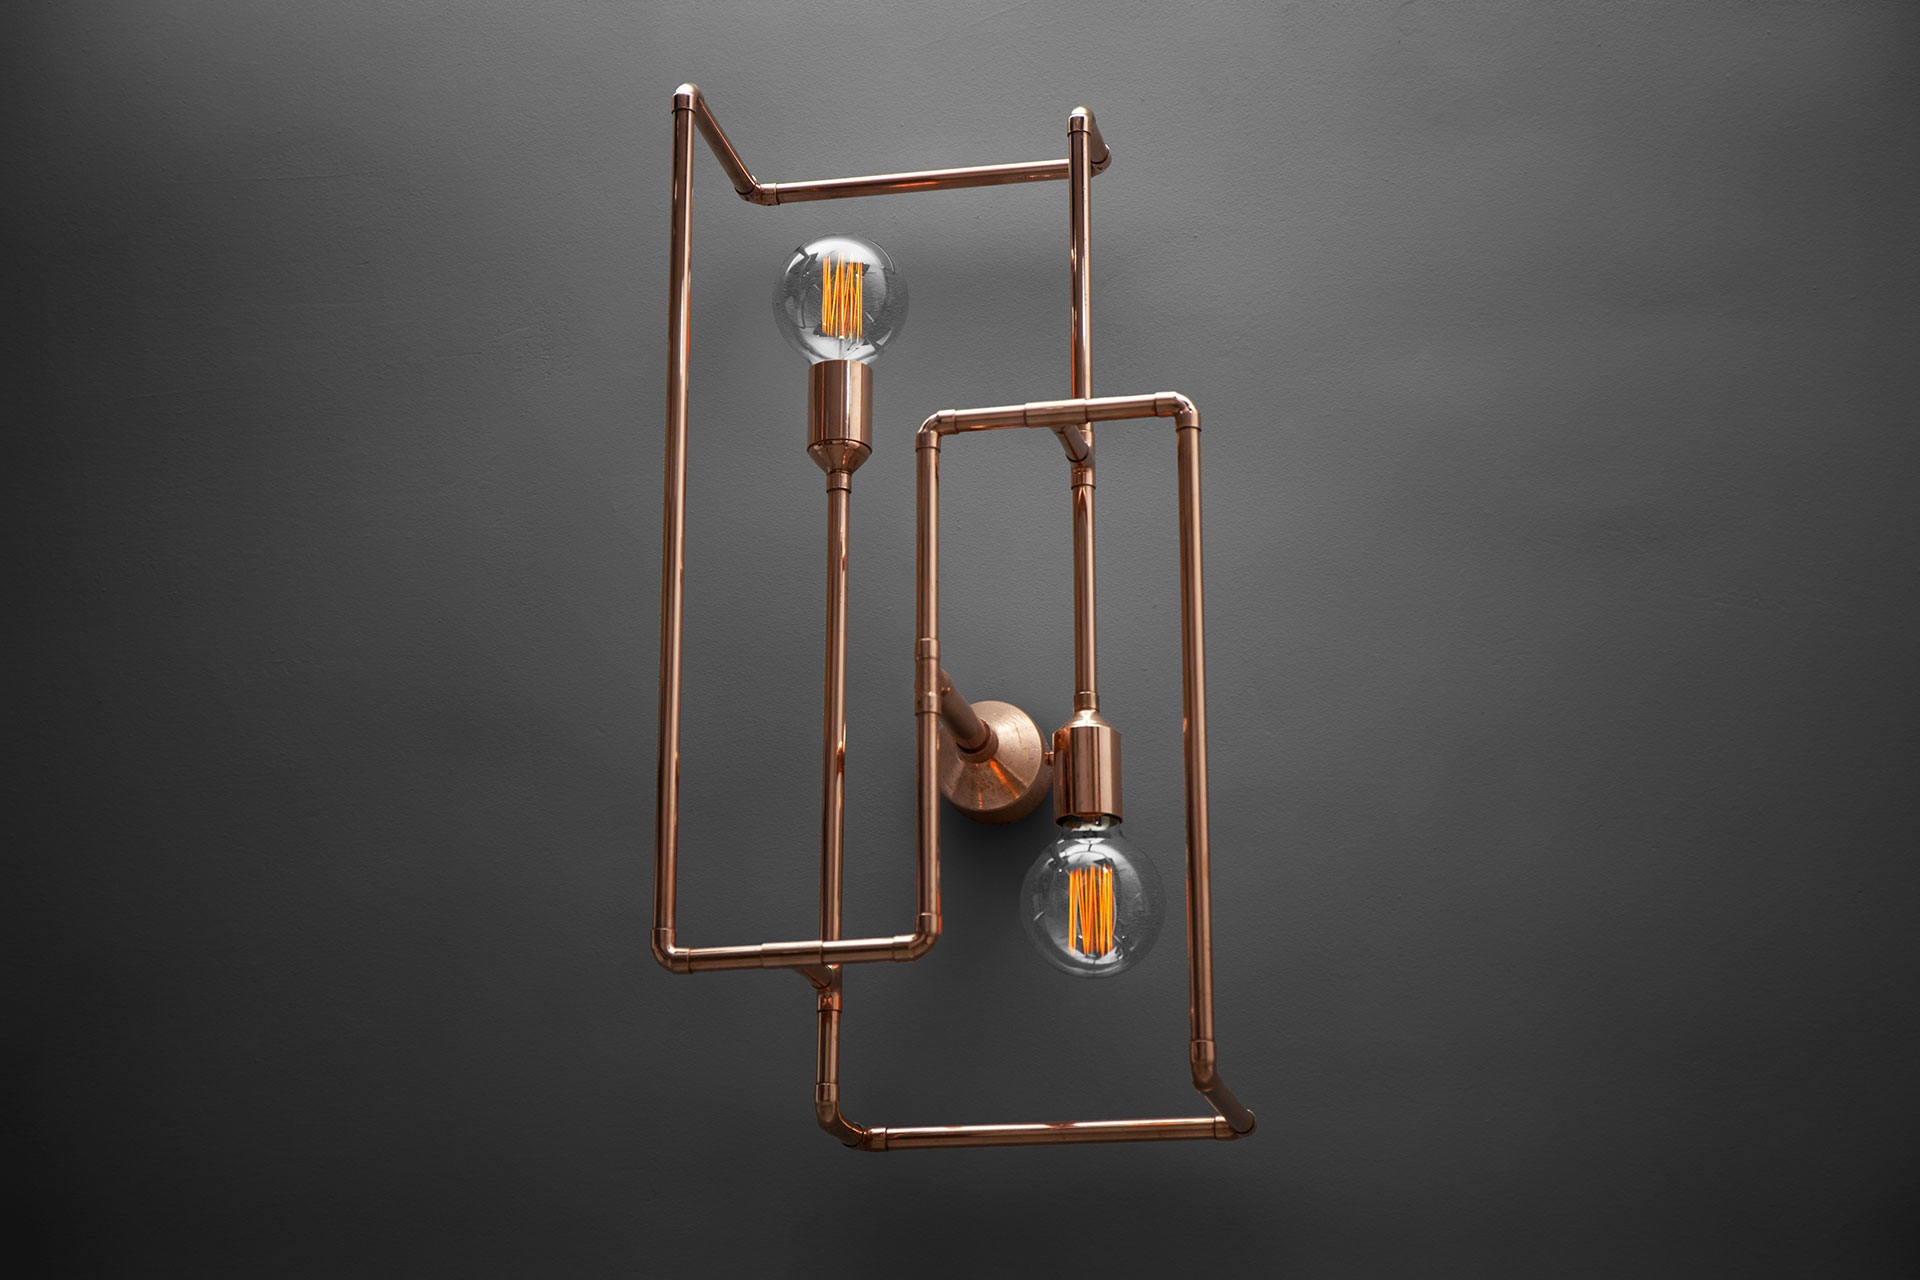 Large decorative copper sconce in loft style restaurant